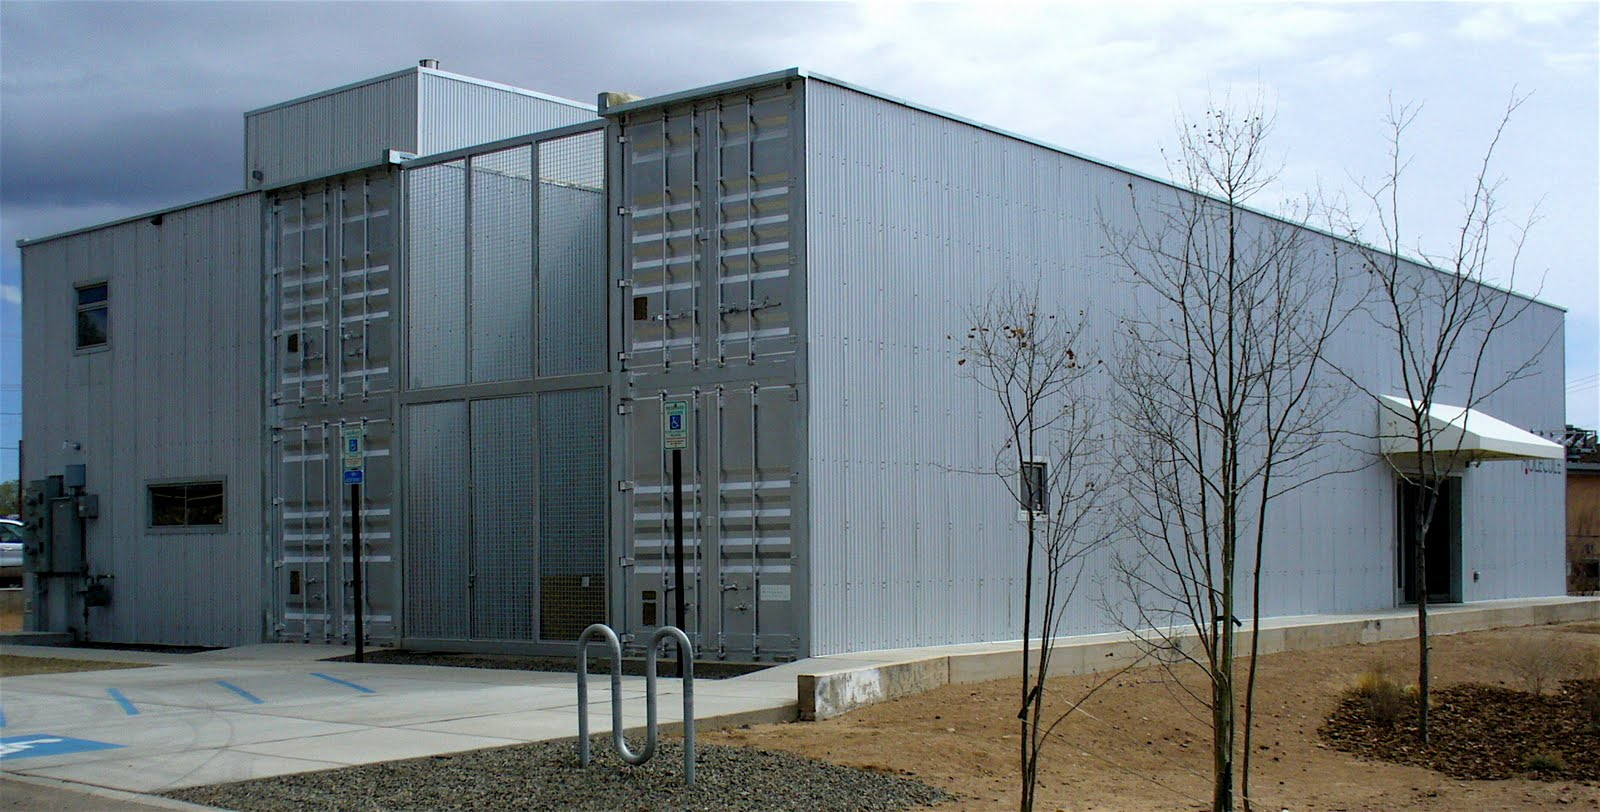 Alt build blog the finished shipping container building - Build home from shipping containers ...